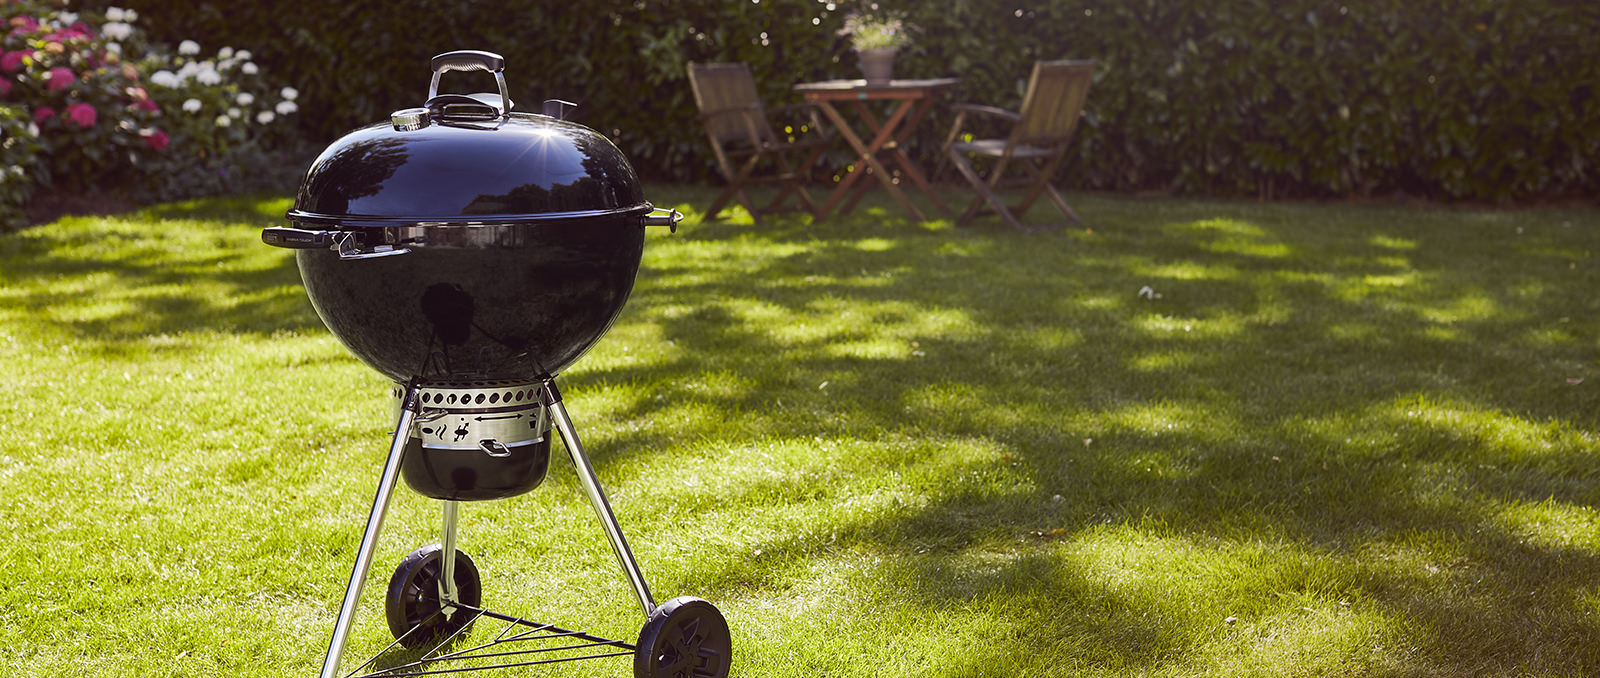 barbecue-weber-charbon